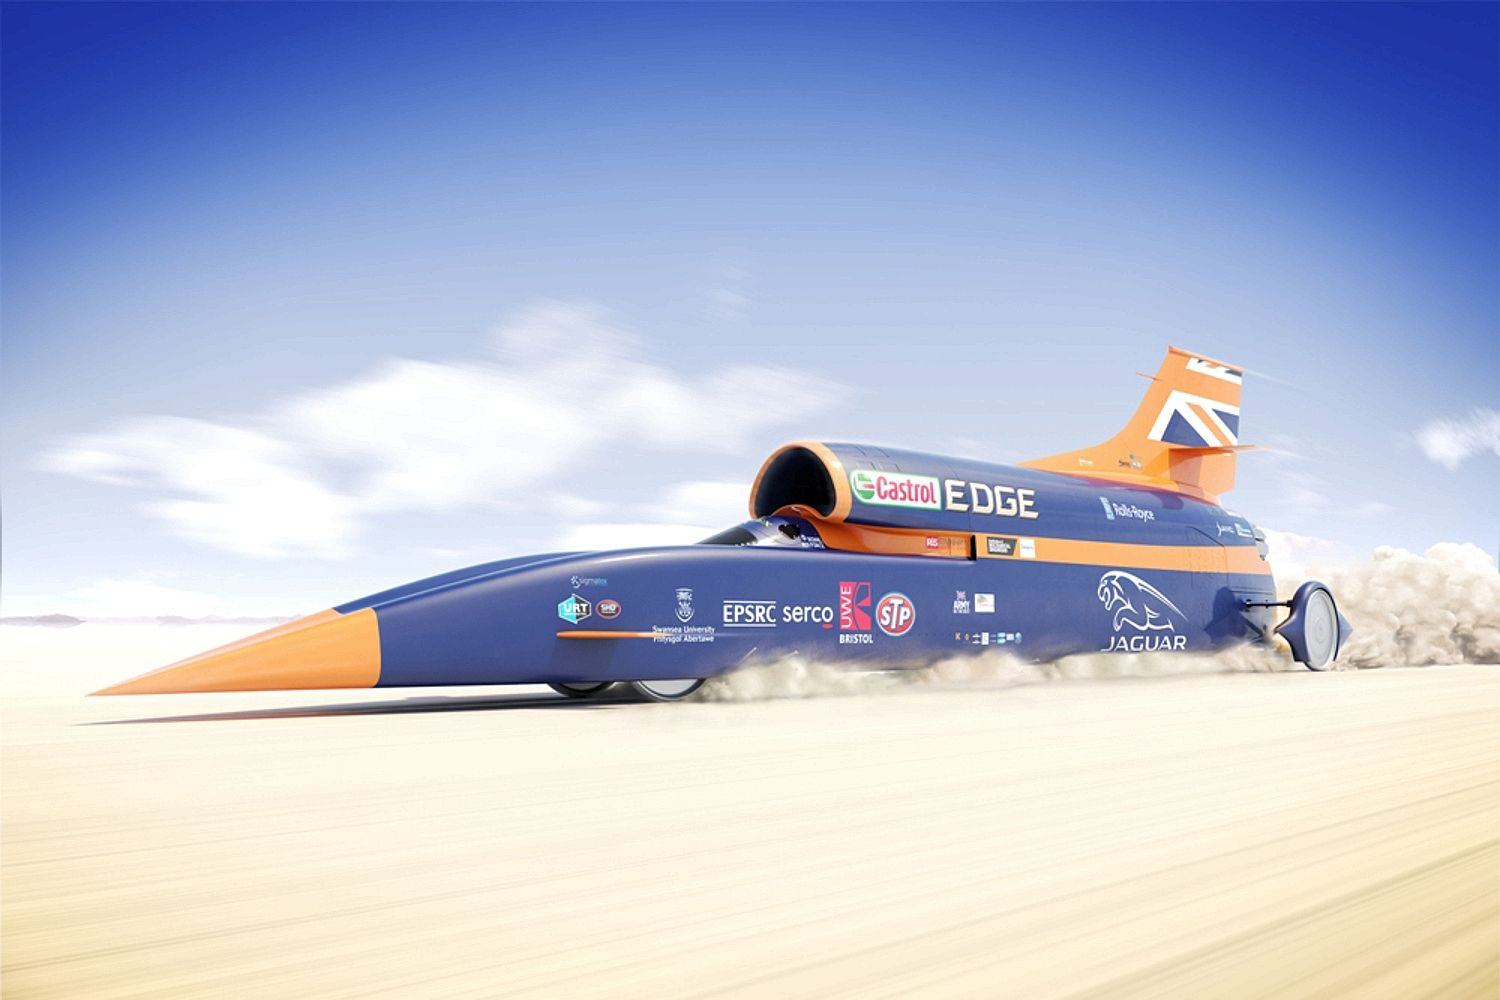 This is the World's First 1000mph Car